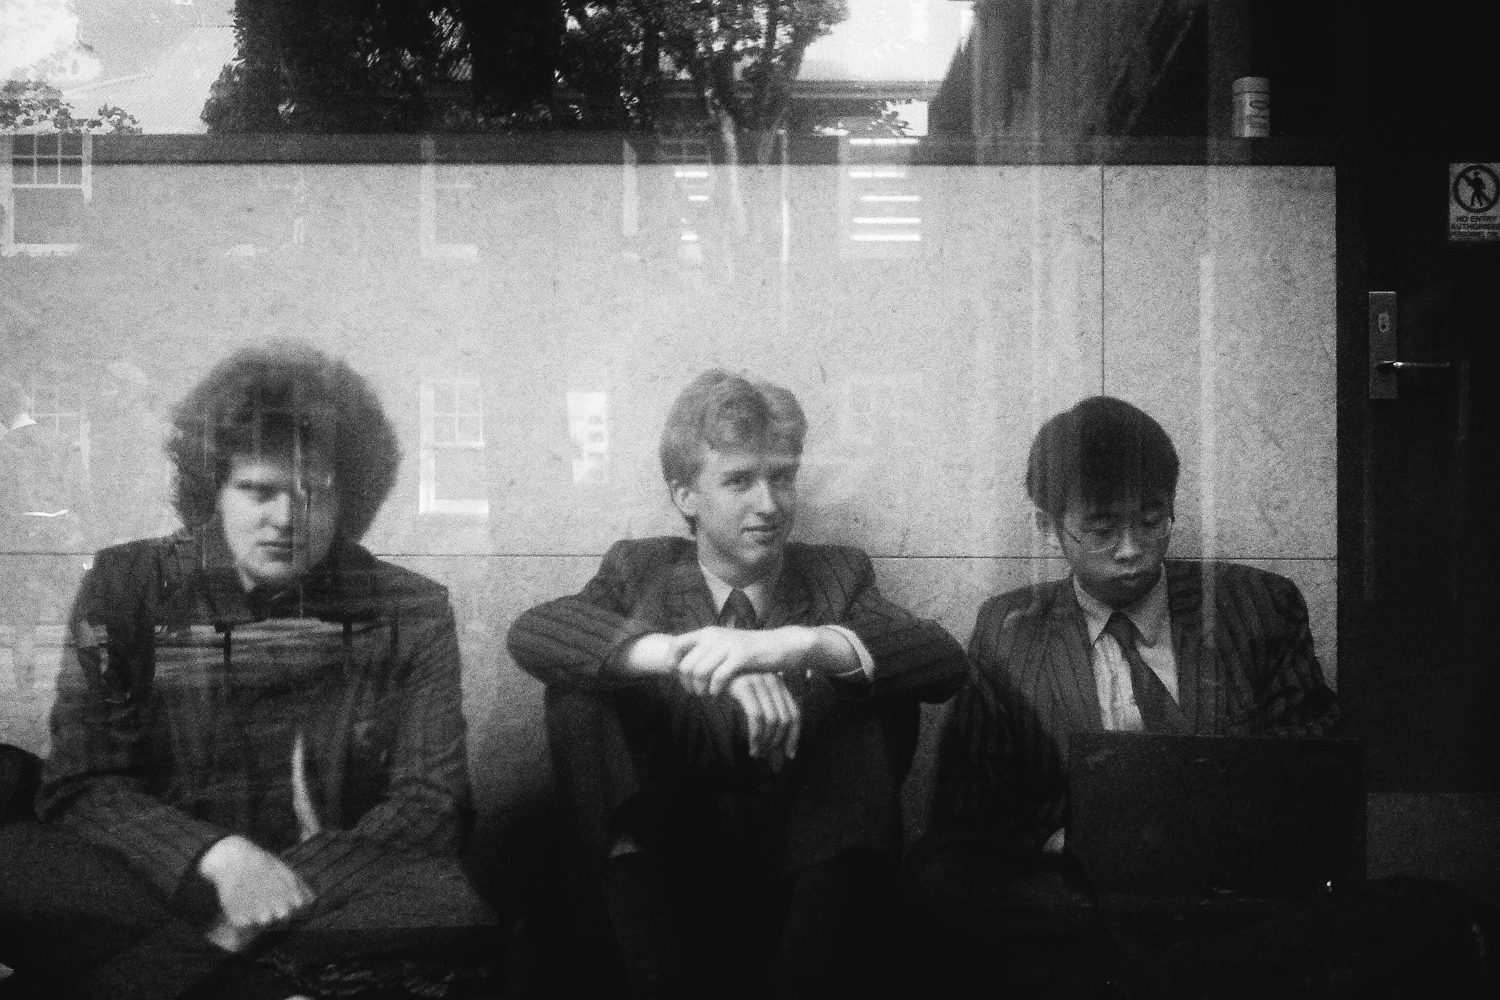 Austin, Adam, Thorben (outside science classrooms at interval), 2017